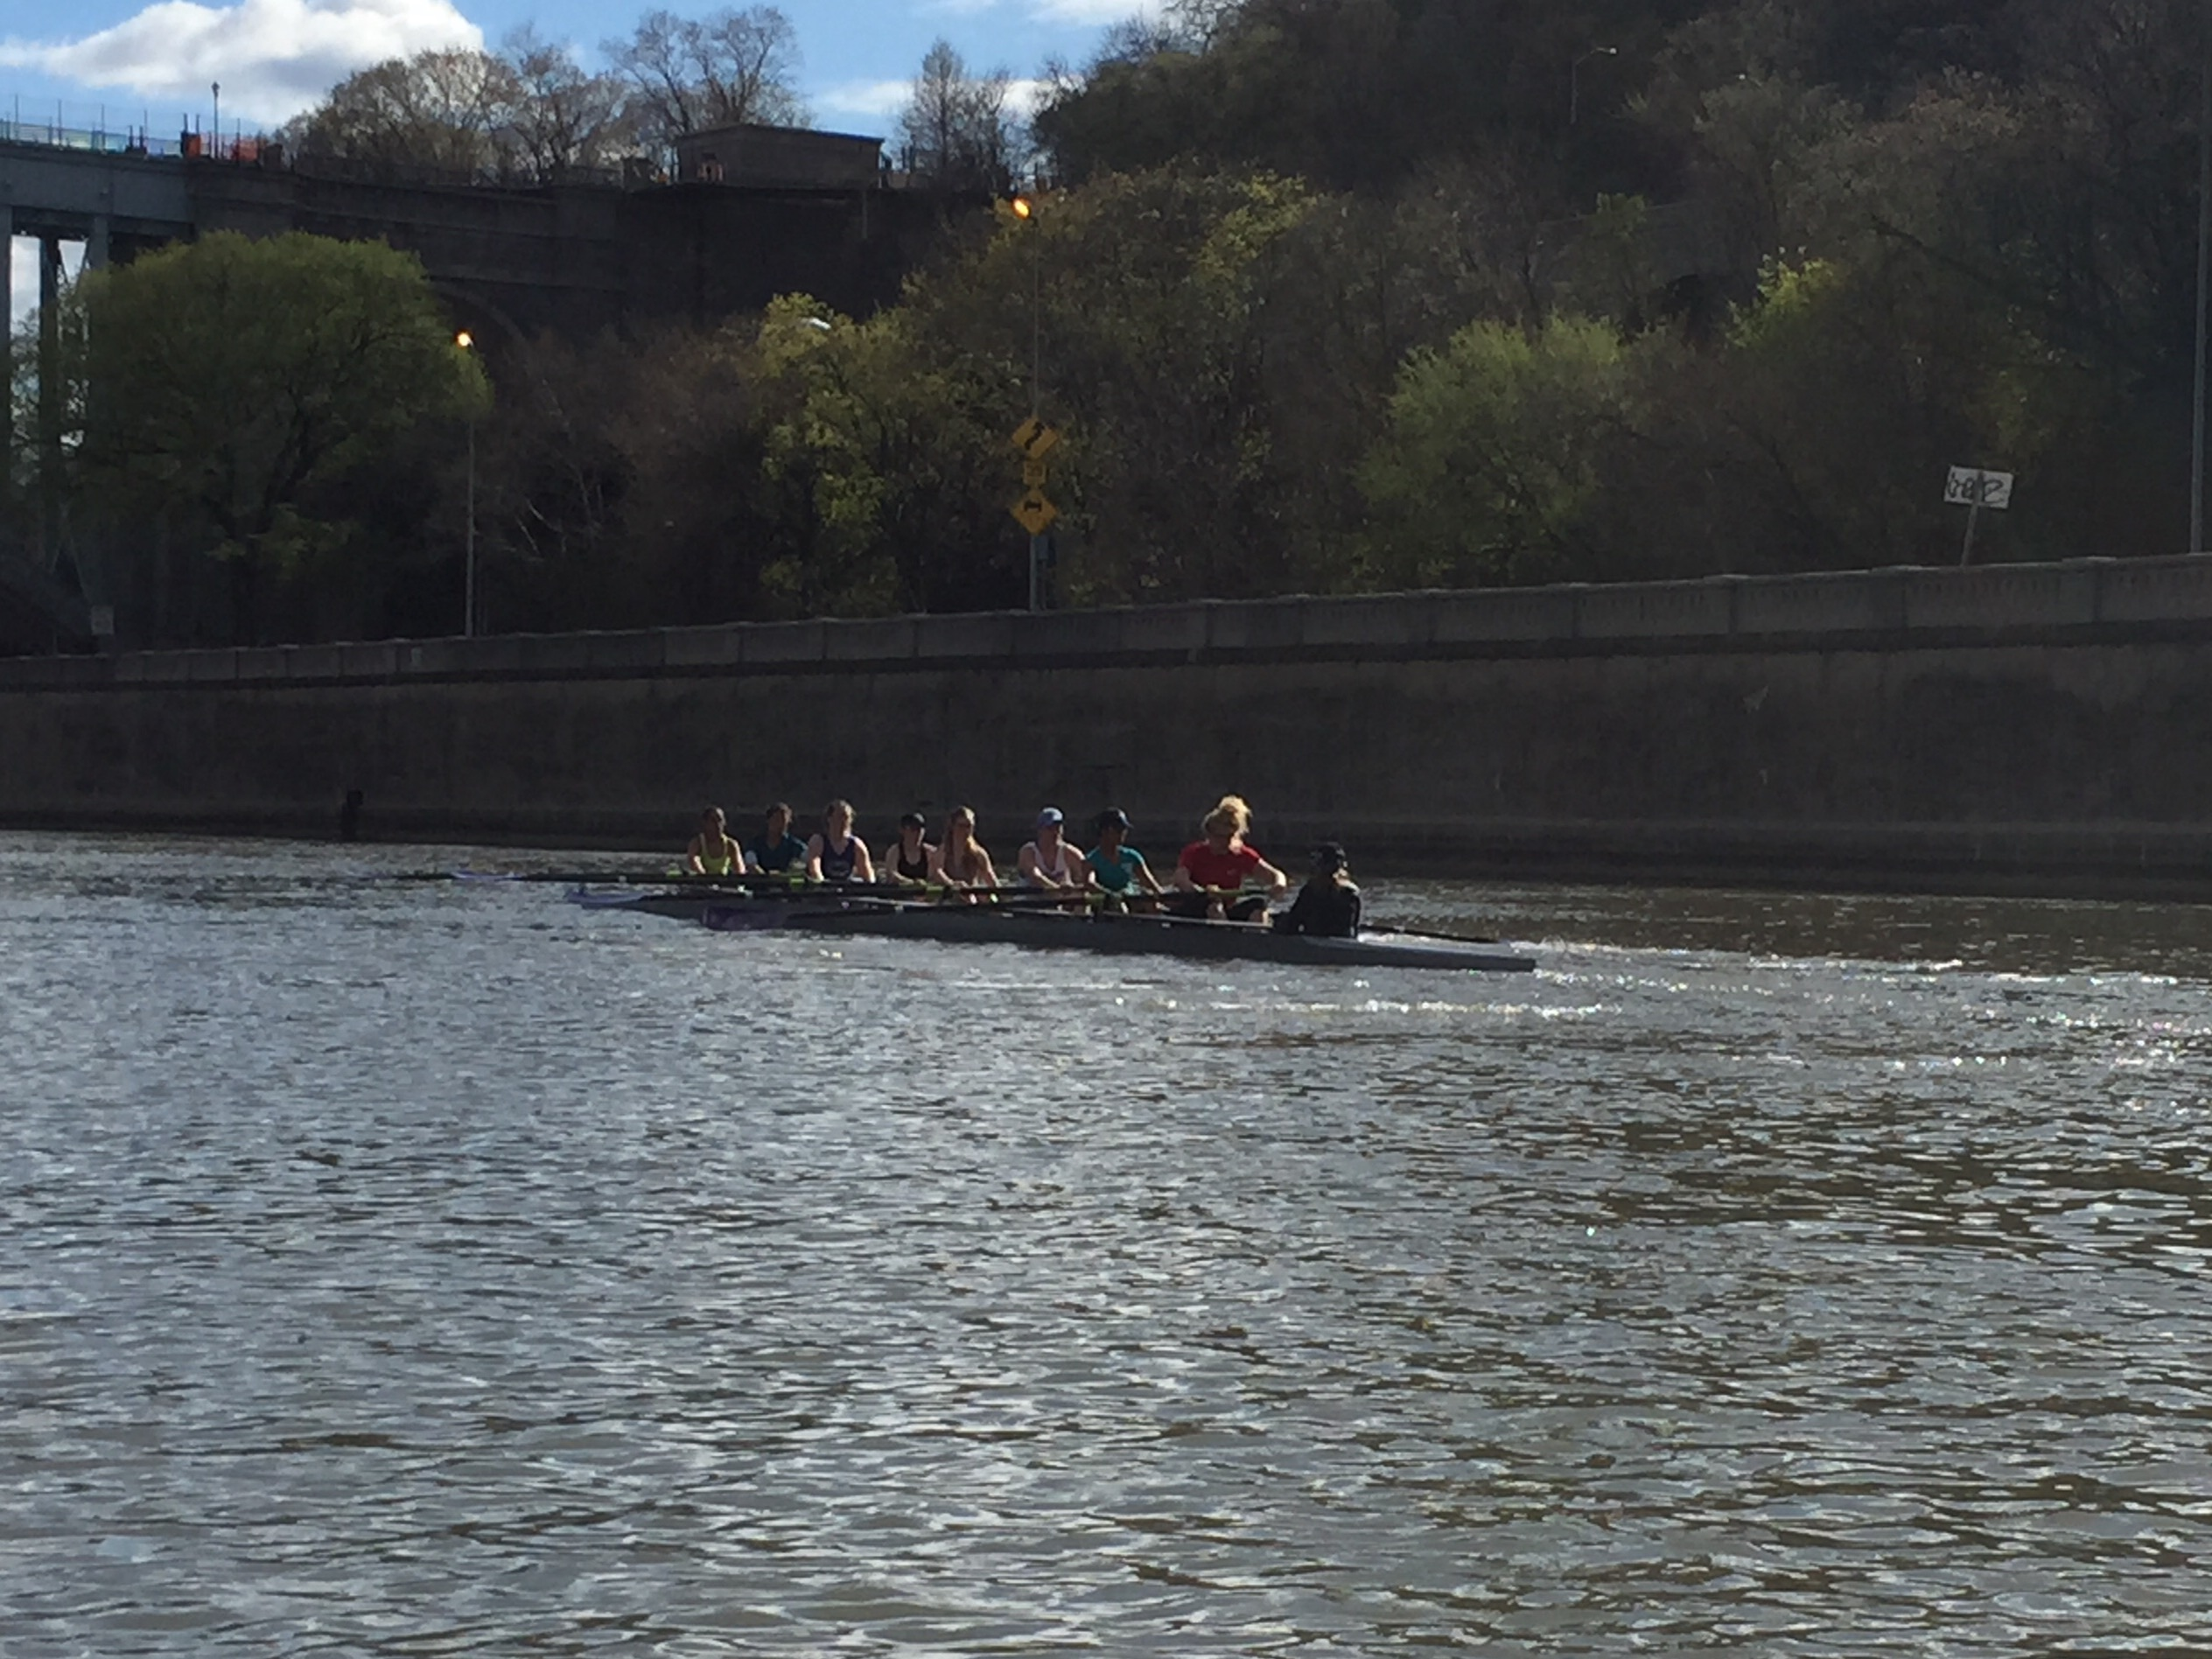 rowing on the Harlem River